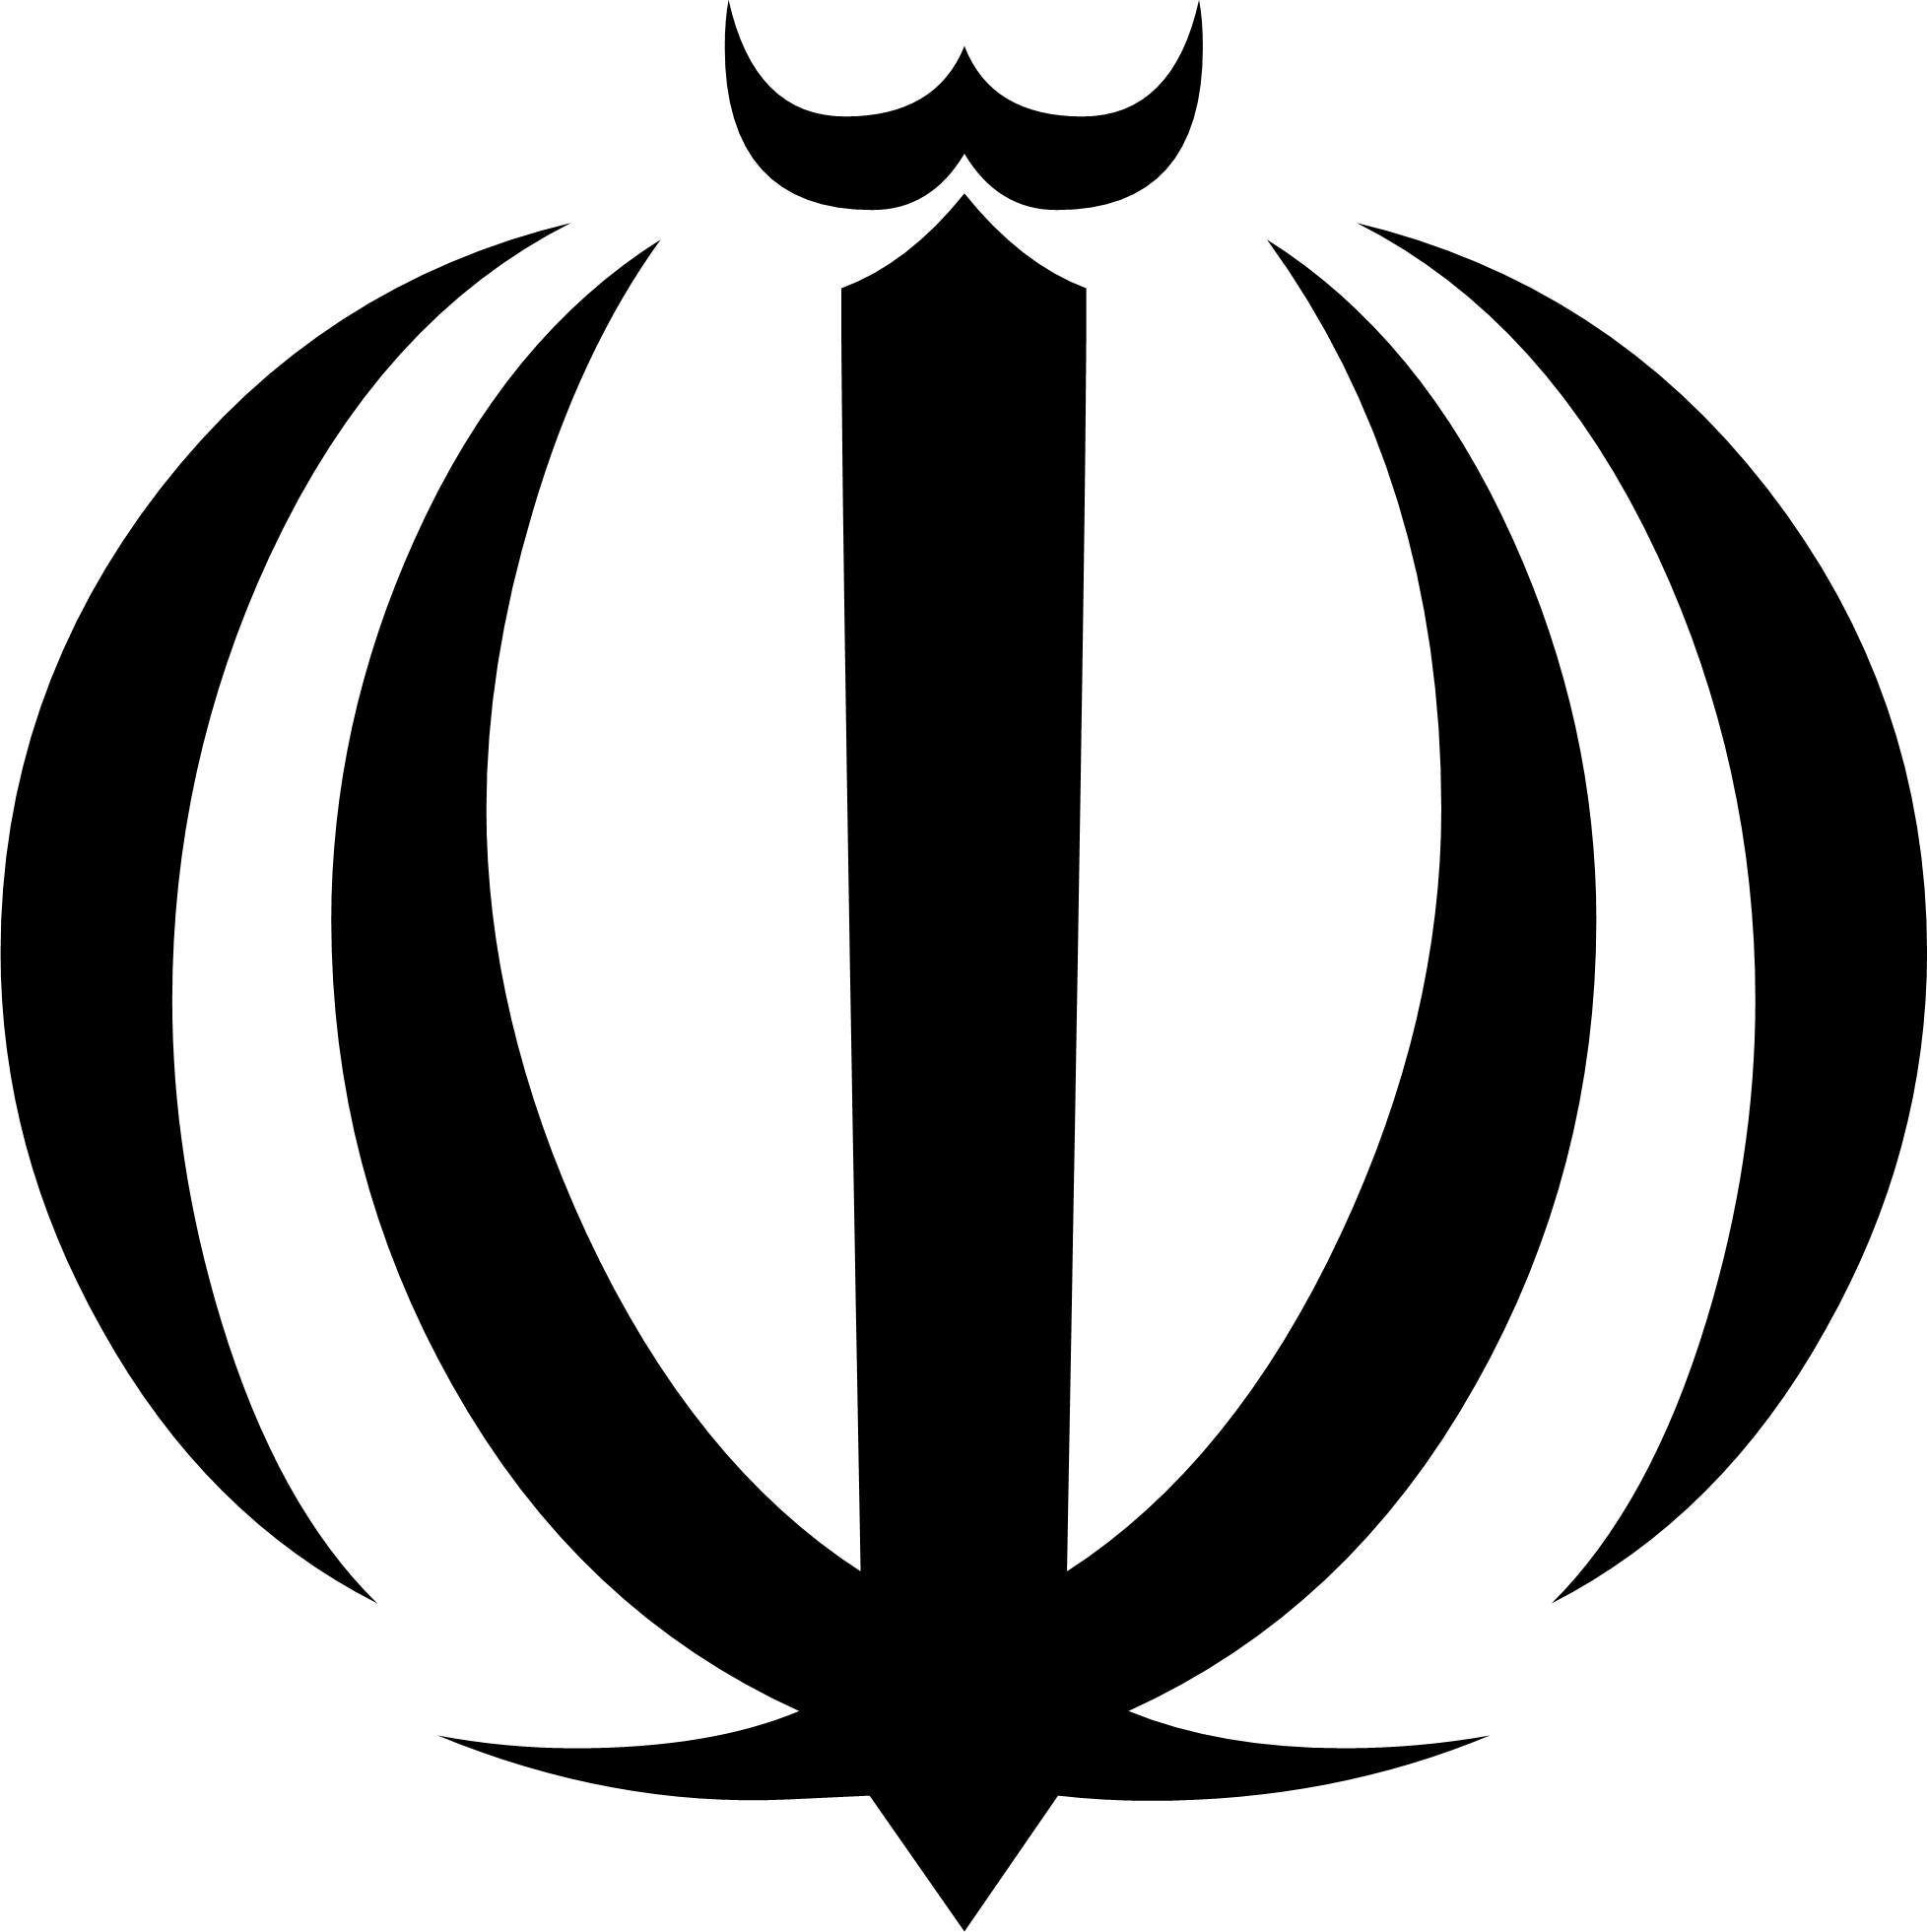 Symbol Above , Is The Symbol Of The Islam Culture And The